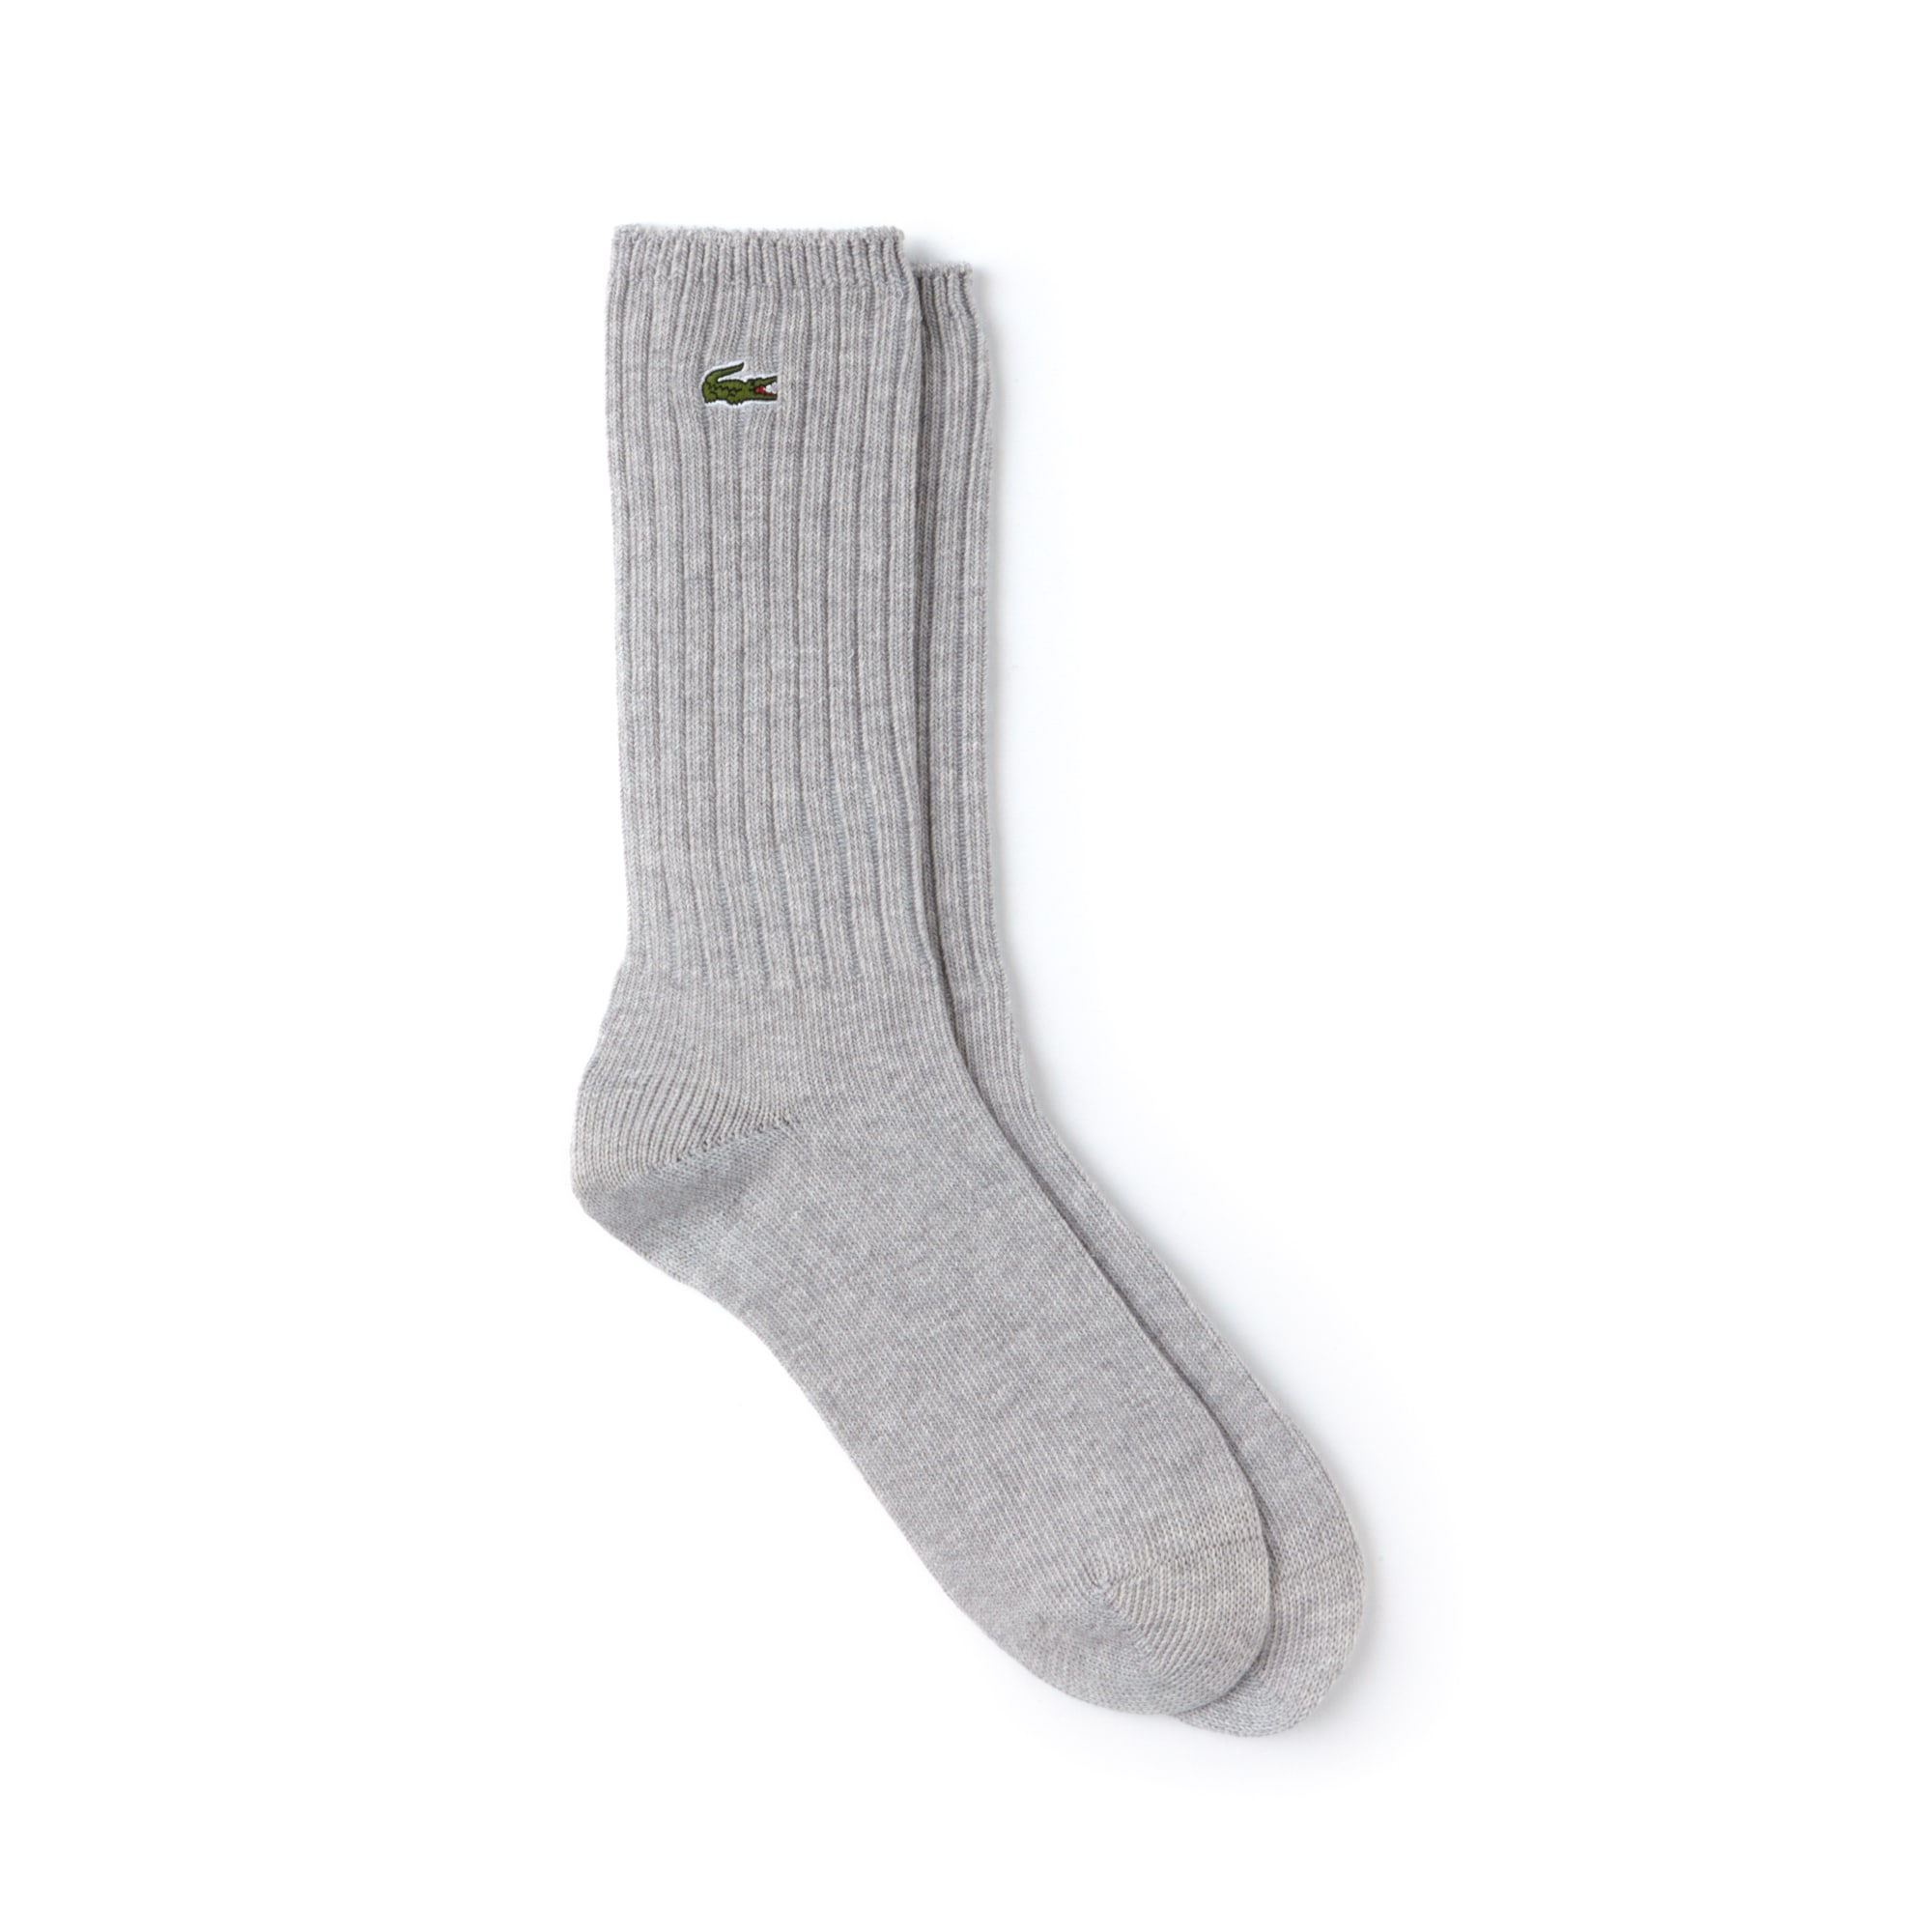 Men's Ribbed Stretch Cotton Socks